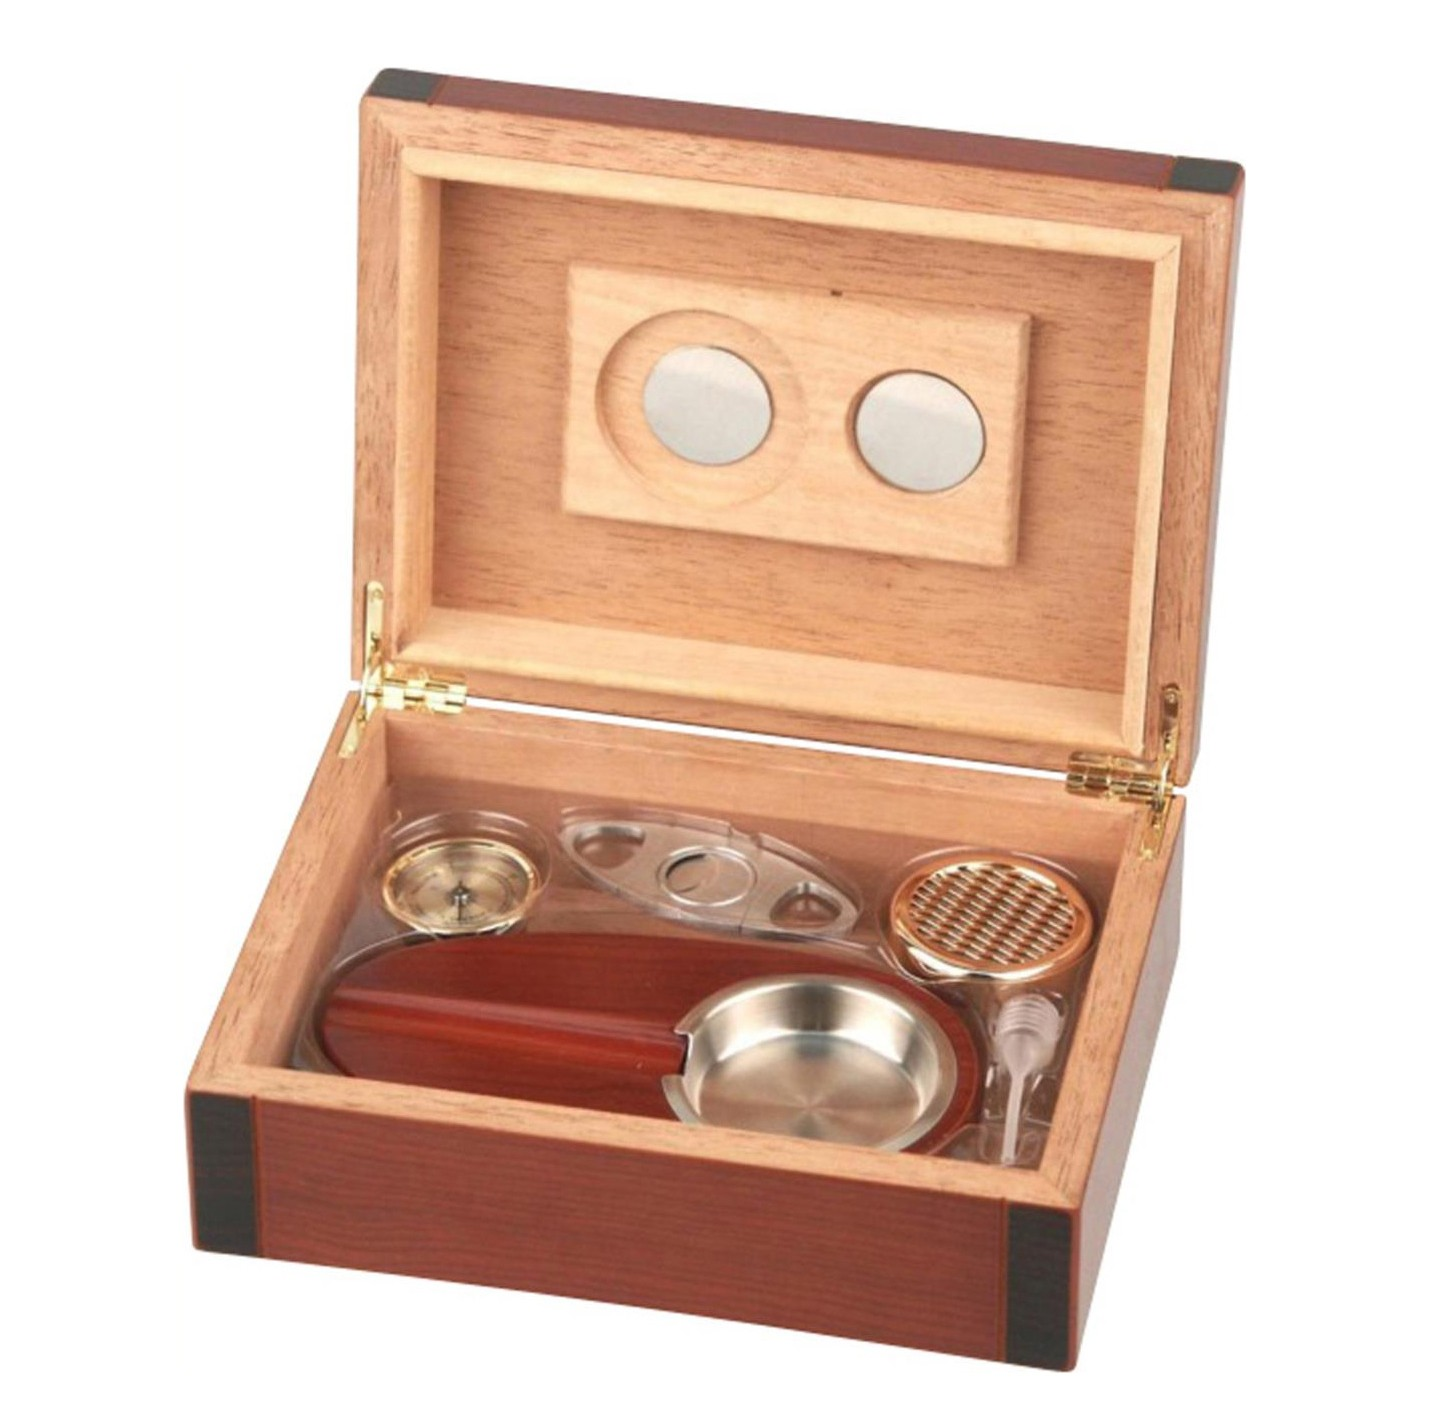 Cigar Box Humidor set cherry 2-tone for ca. 25 cigars with hygrometer+humidifier+cutter+ashtray H 8 x W 24 x D 18cm